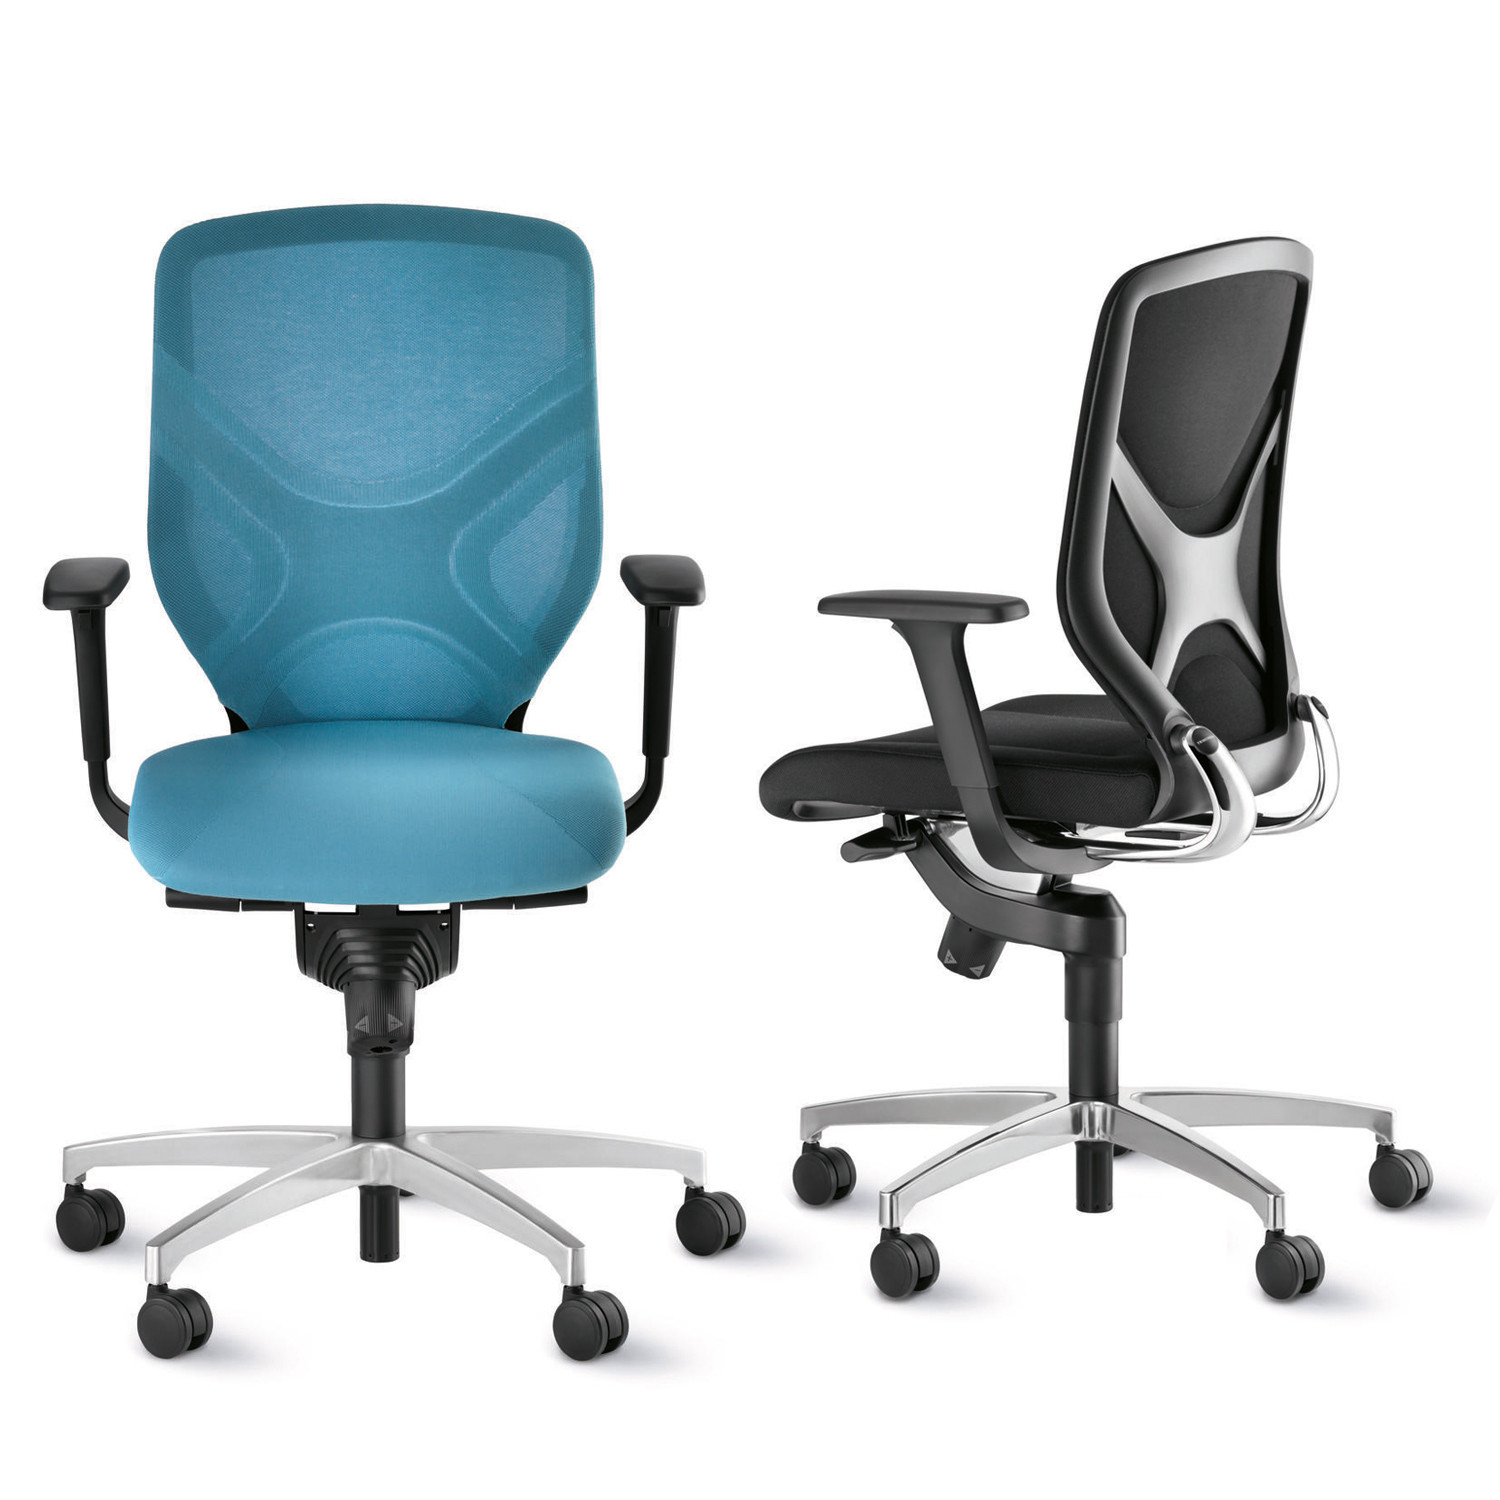 In Office Chair Wilkhahn In Office Chairs Apres Furniture